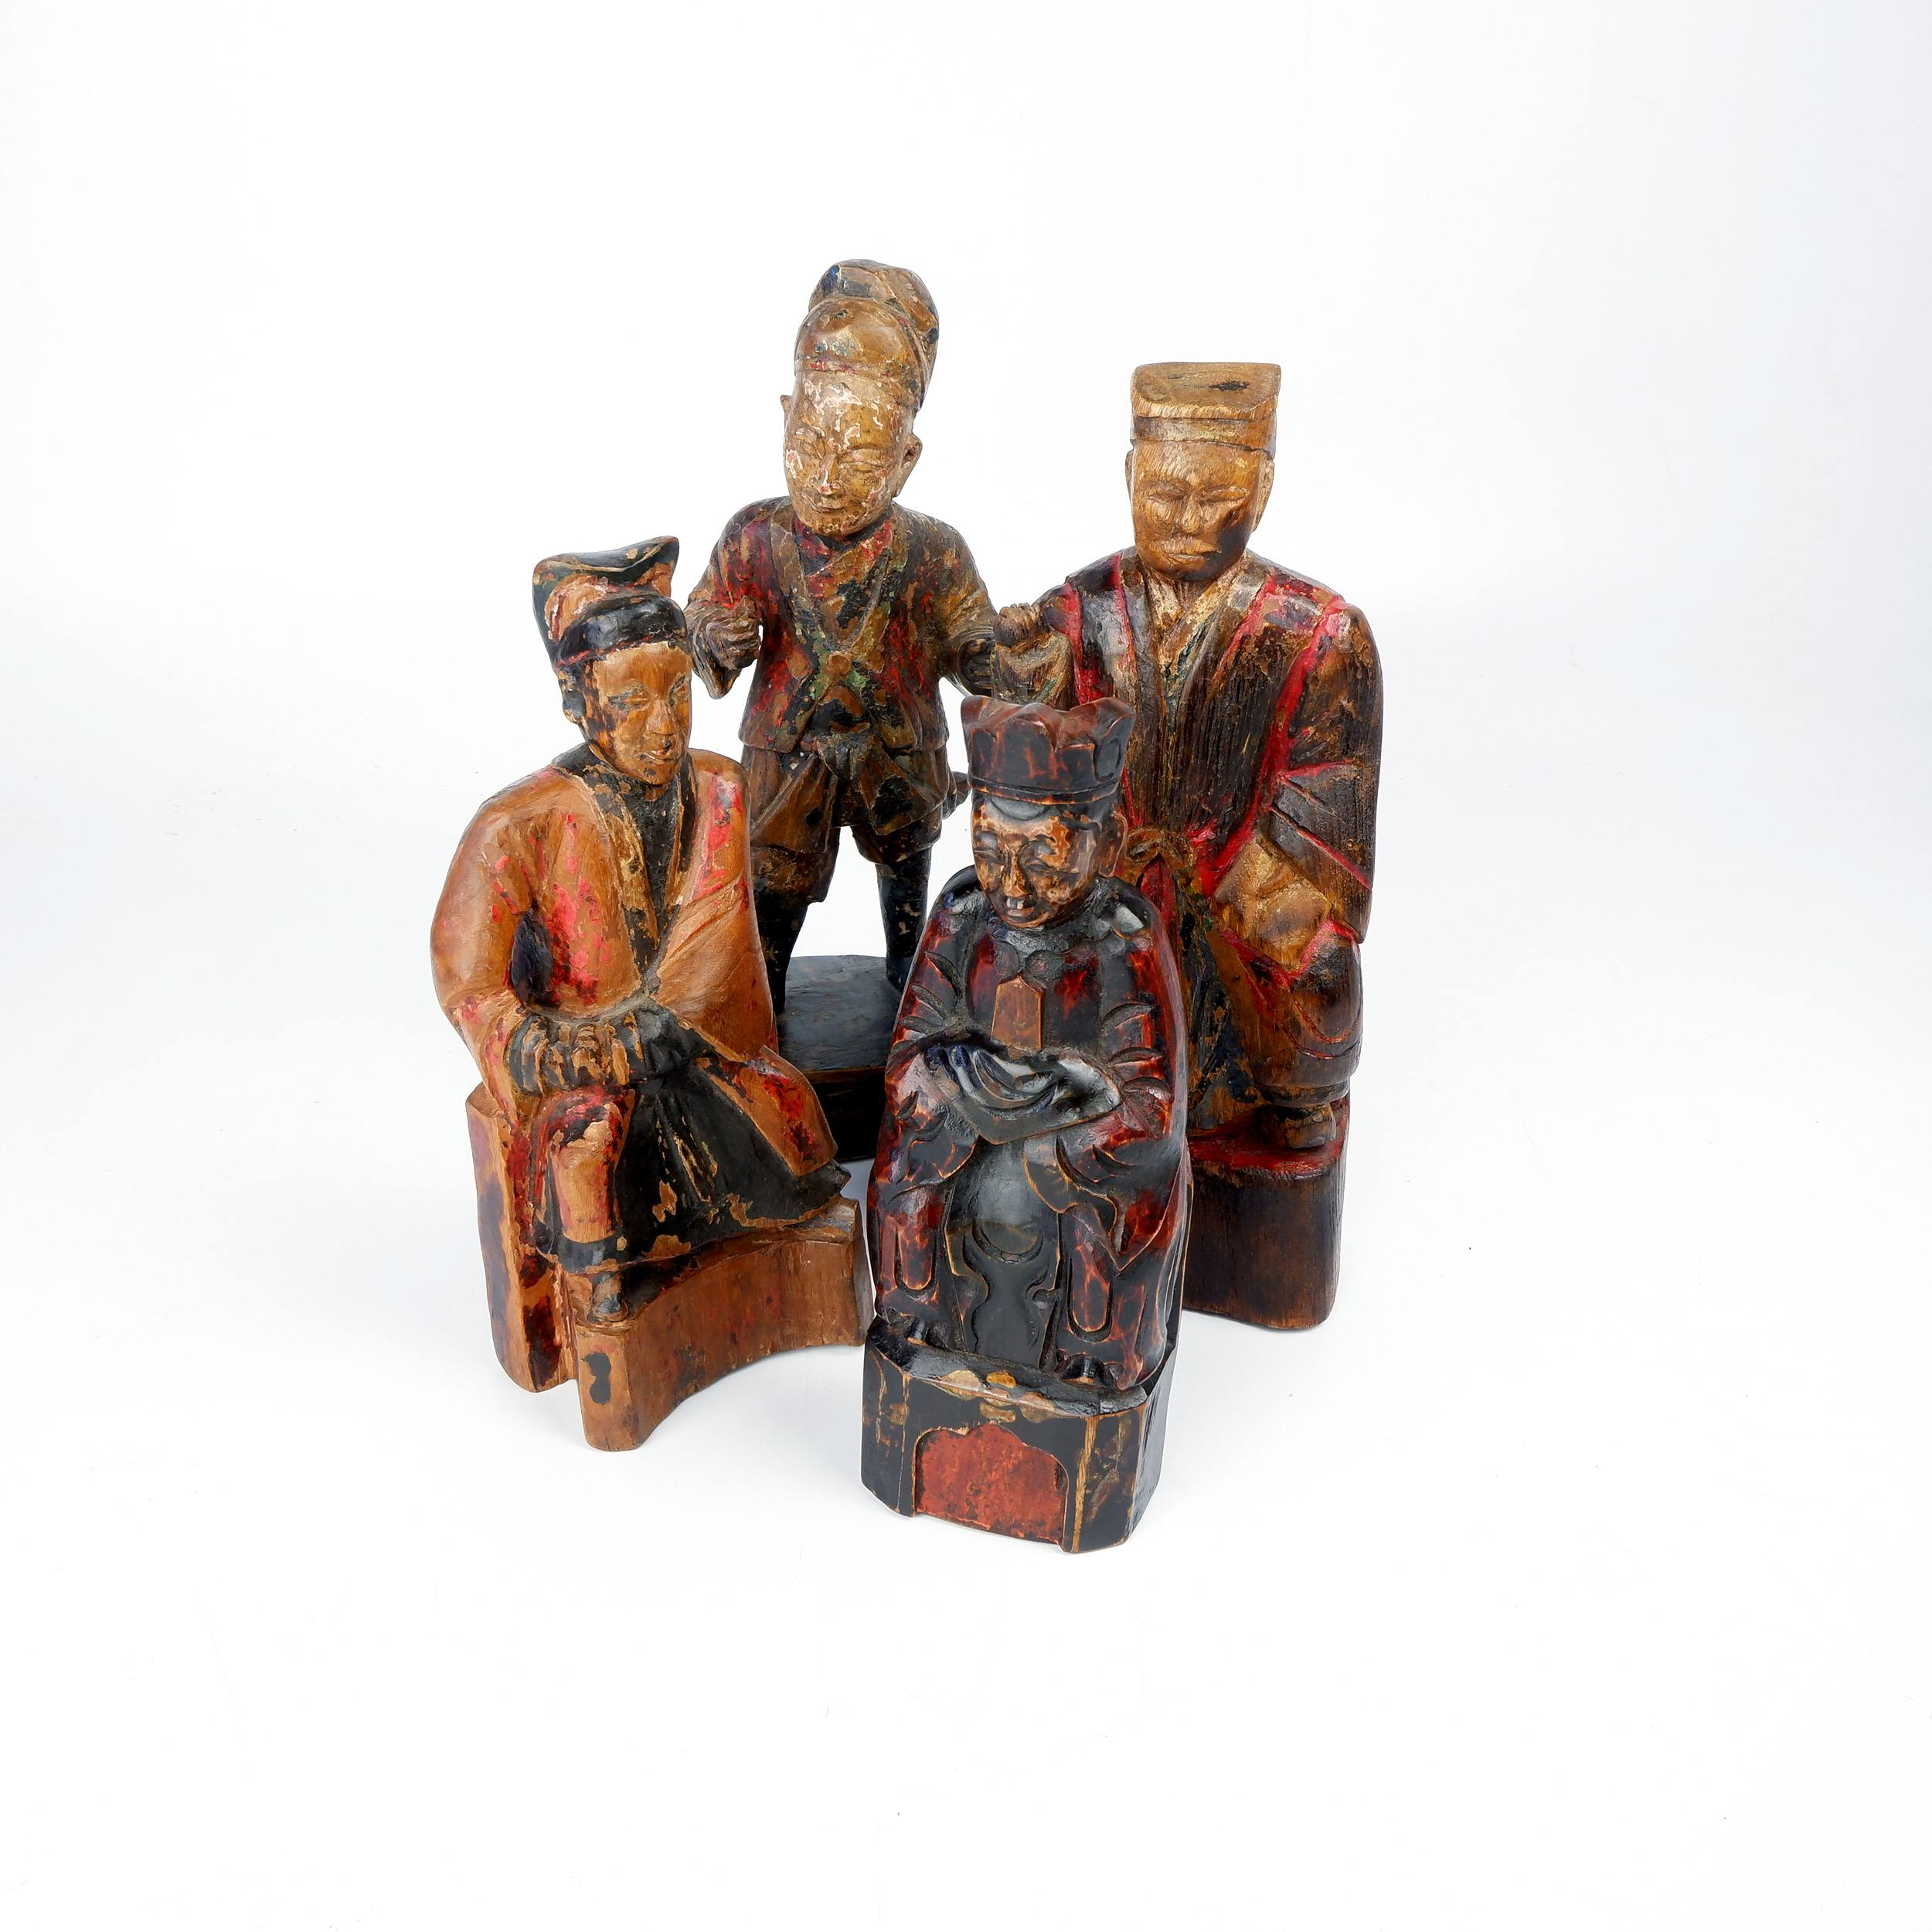 'Four Antique Chinese Hand Carved and Painted Kitchen Gods, Late 19th Century'